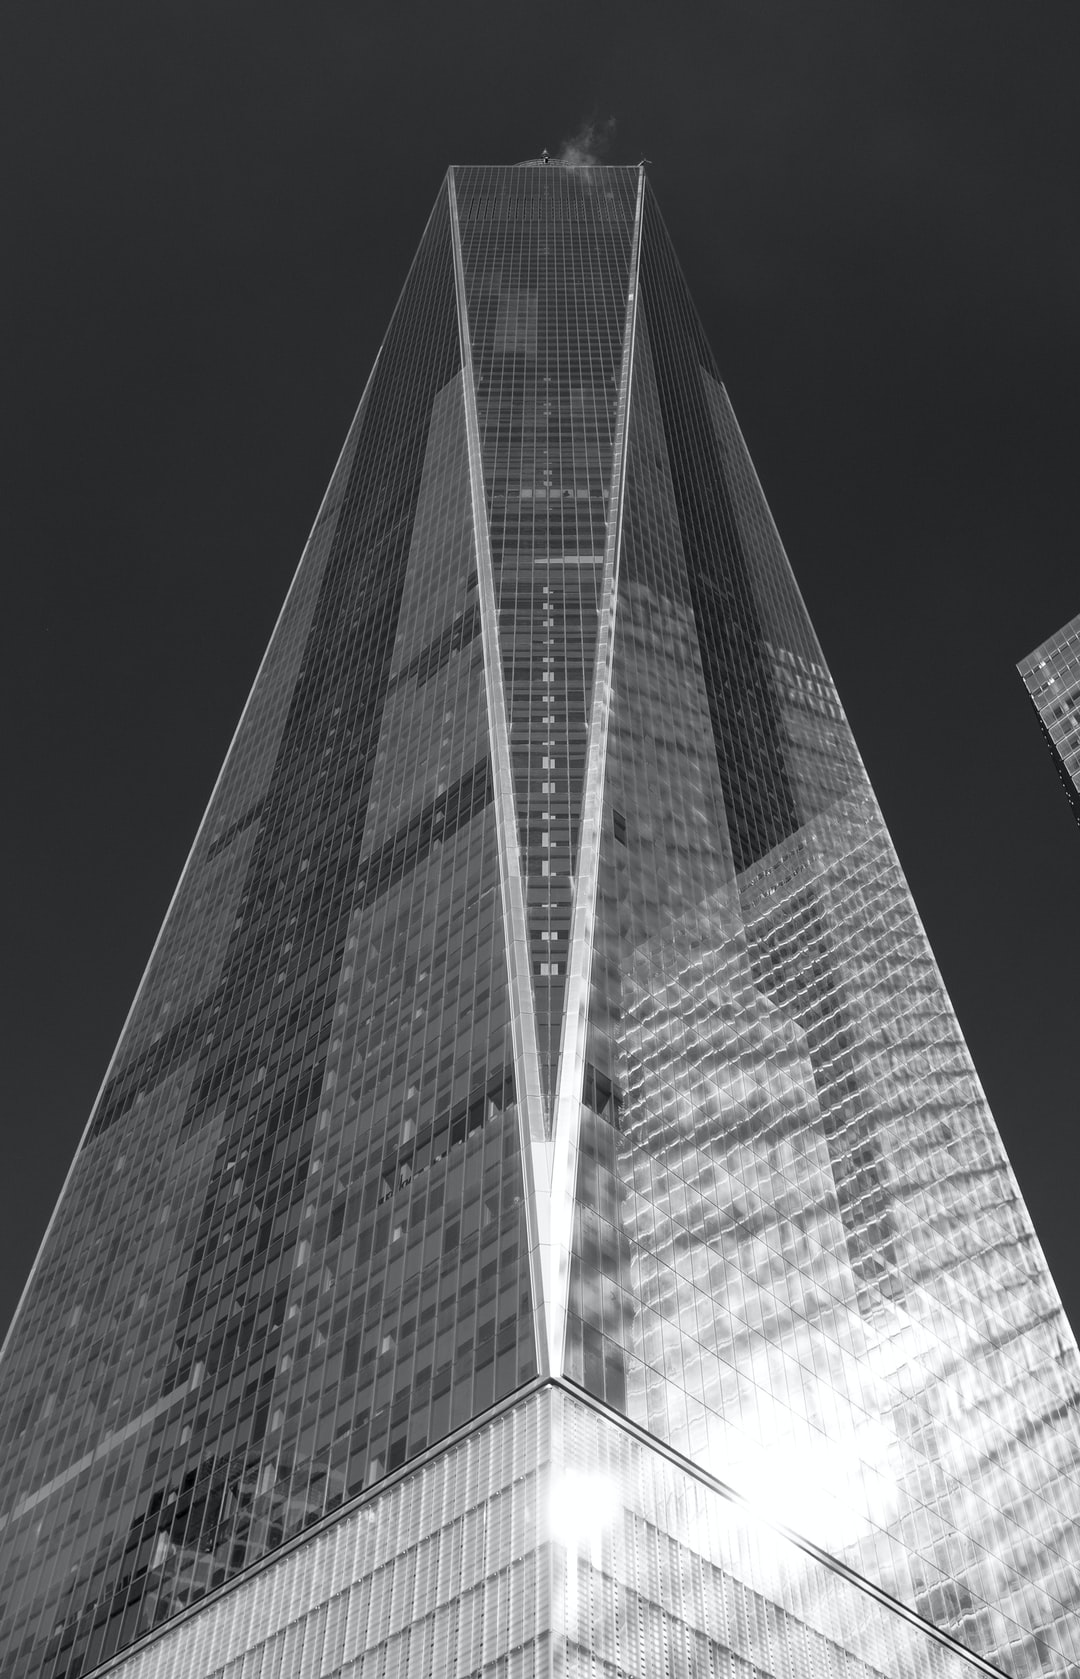 One of the coldest days I have ever experienced. Sunny, below freezing and the wind must have been blowing 50 mph through lower Manhattan. As we exited the 9/11 Memorial, I had to capture this image of the Freedom Tower, frozen in time.